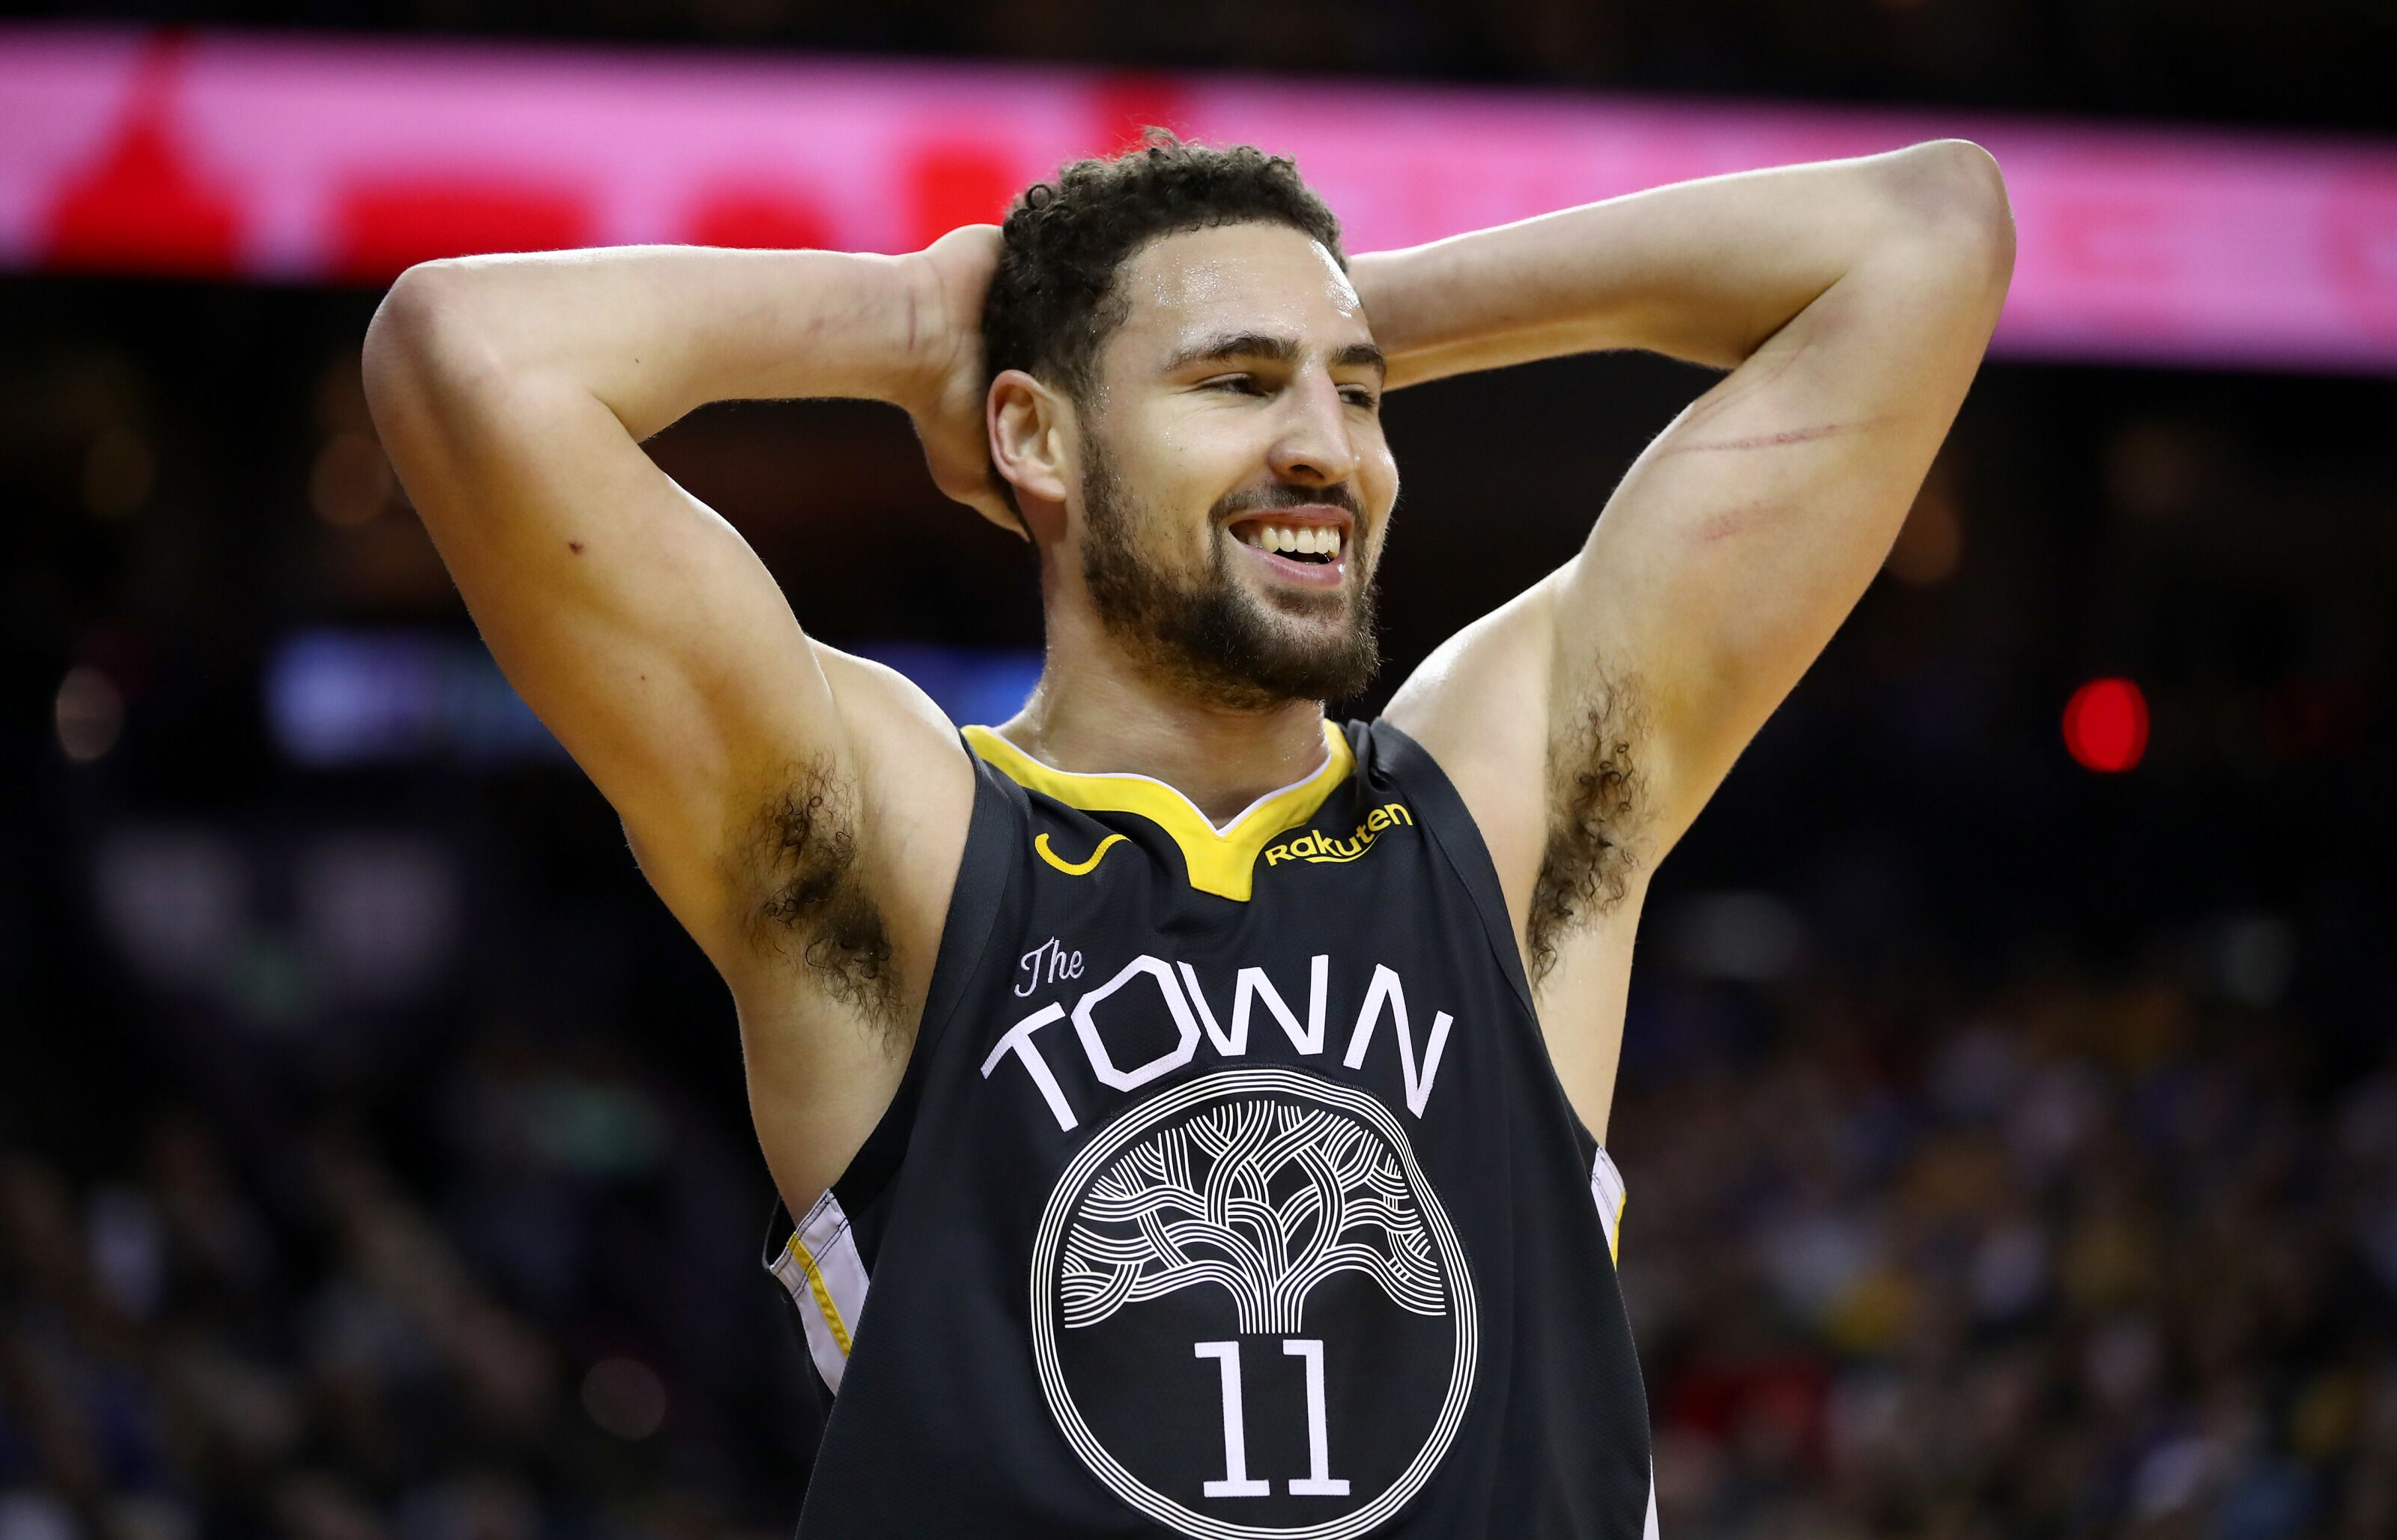 Golden State Warriors: Klay Thompson would prefer to play LAC in West's first round